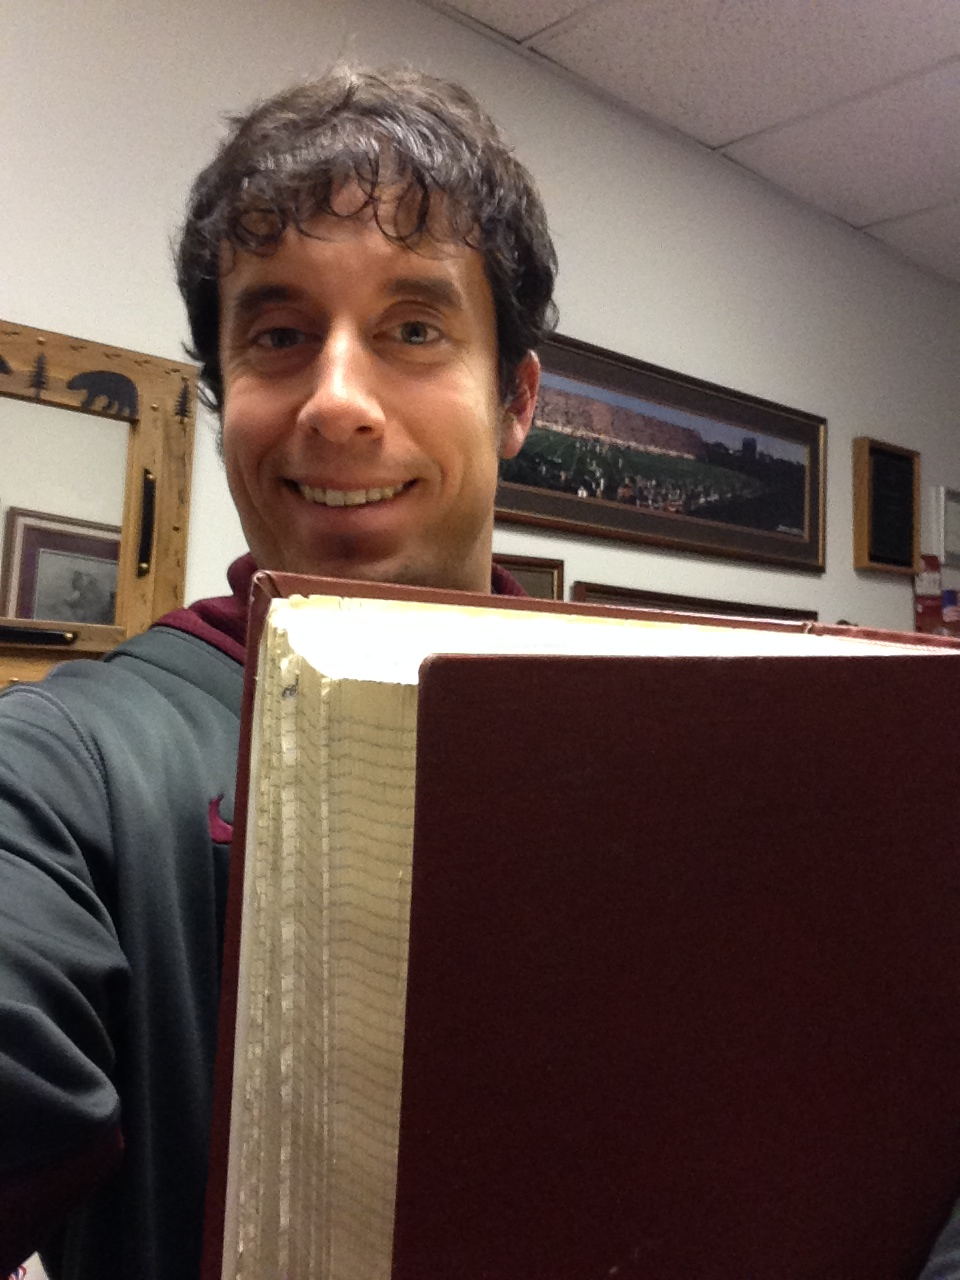 Here is me with the Red Book. It is HUGE.